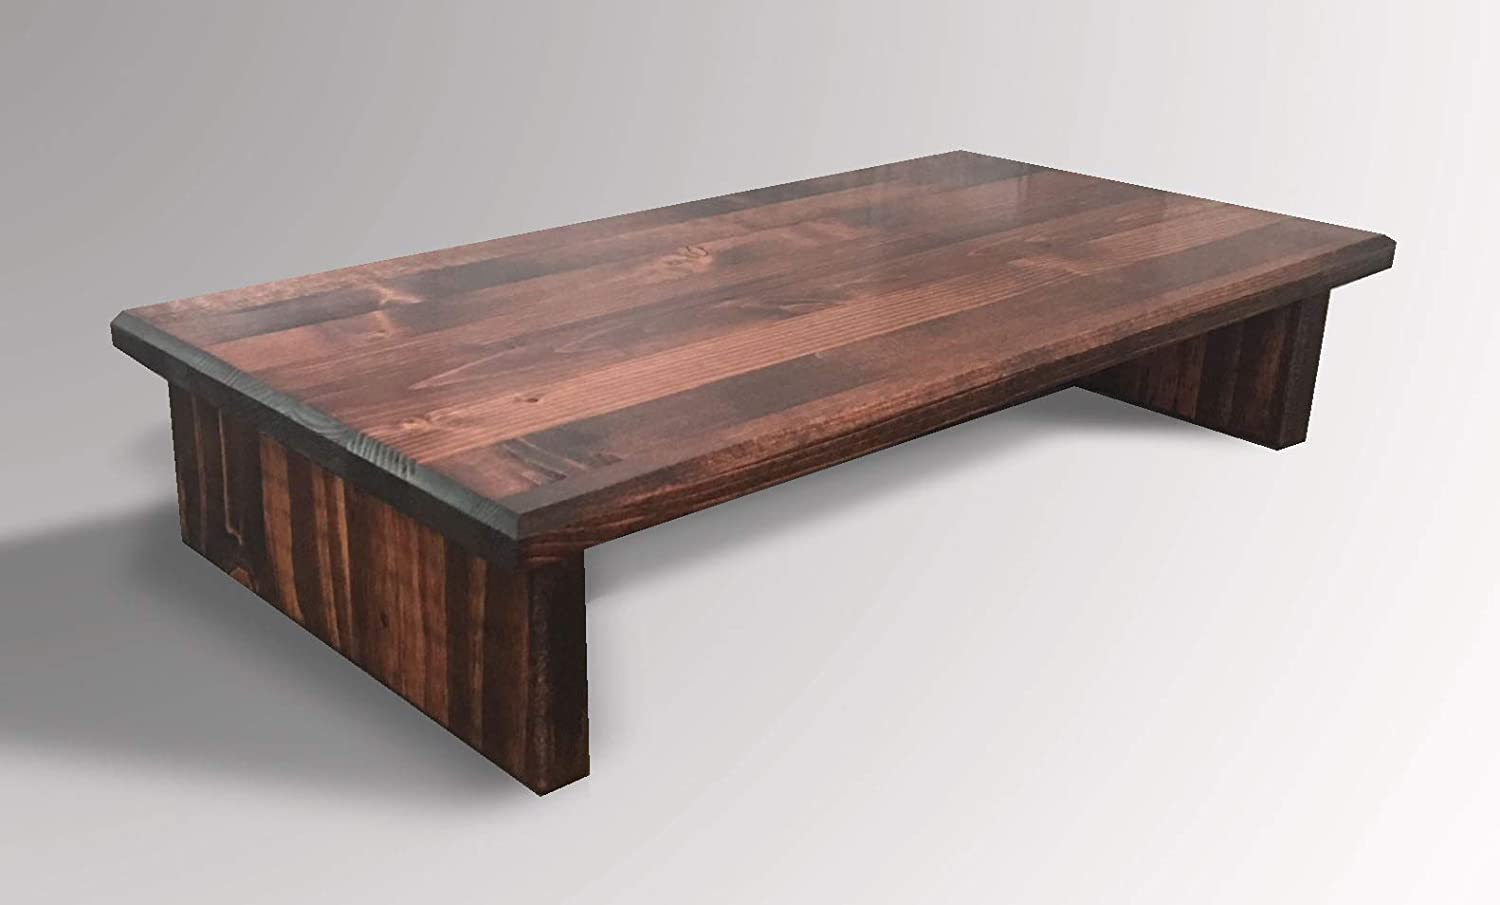 Monitor Stand P3/4RM20-4 Pine Red Mahogany 20 x 11.5 x 4.75 TV Wood Shelf Riser Furniture Desk Assembled Made in USA New